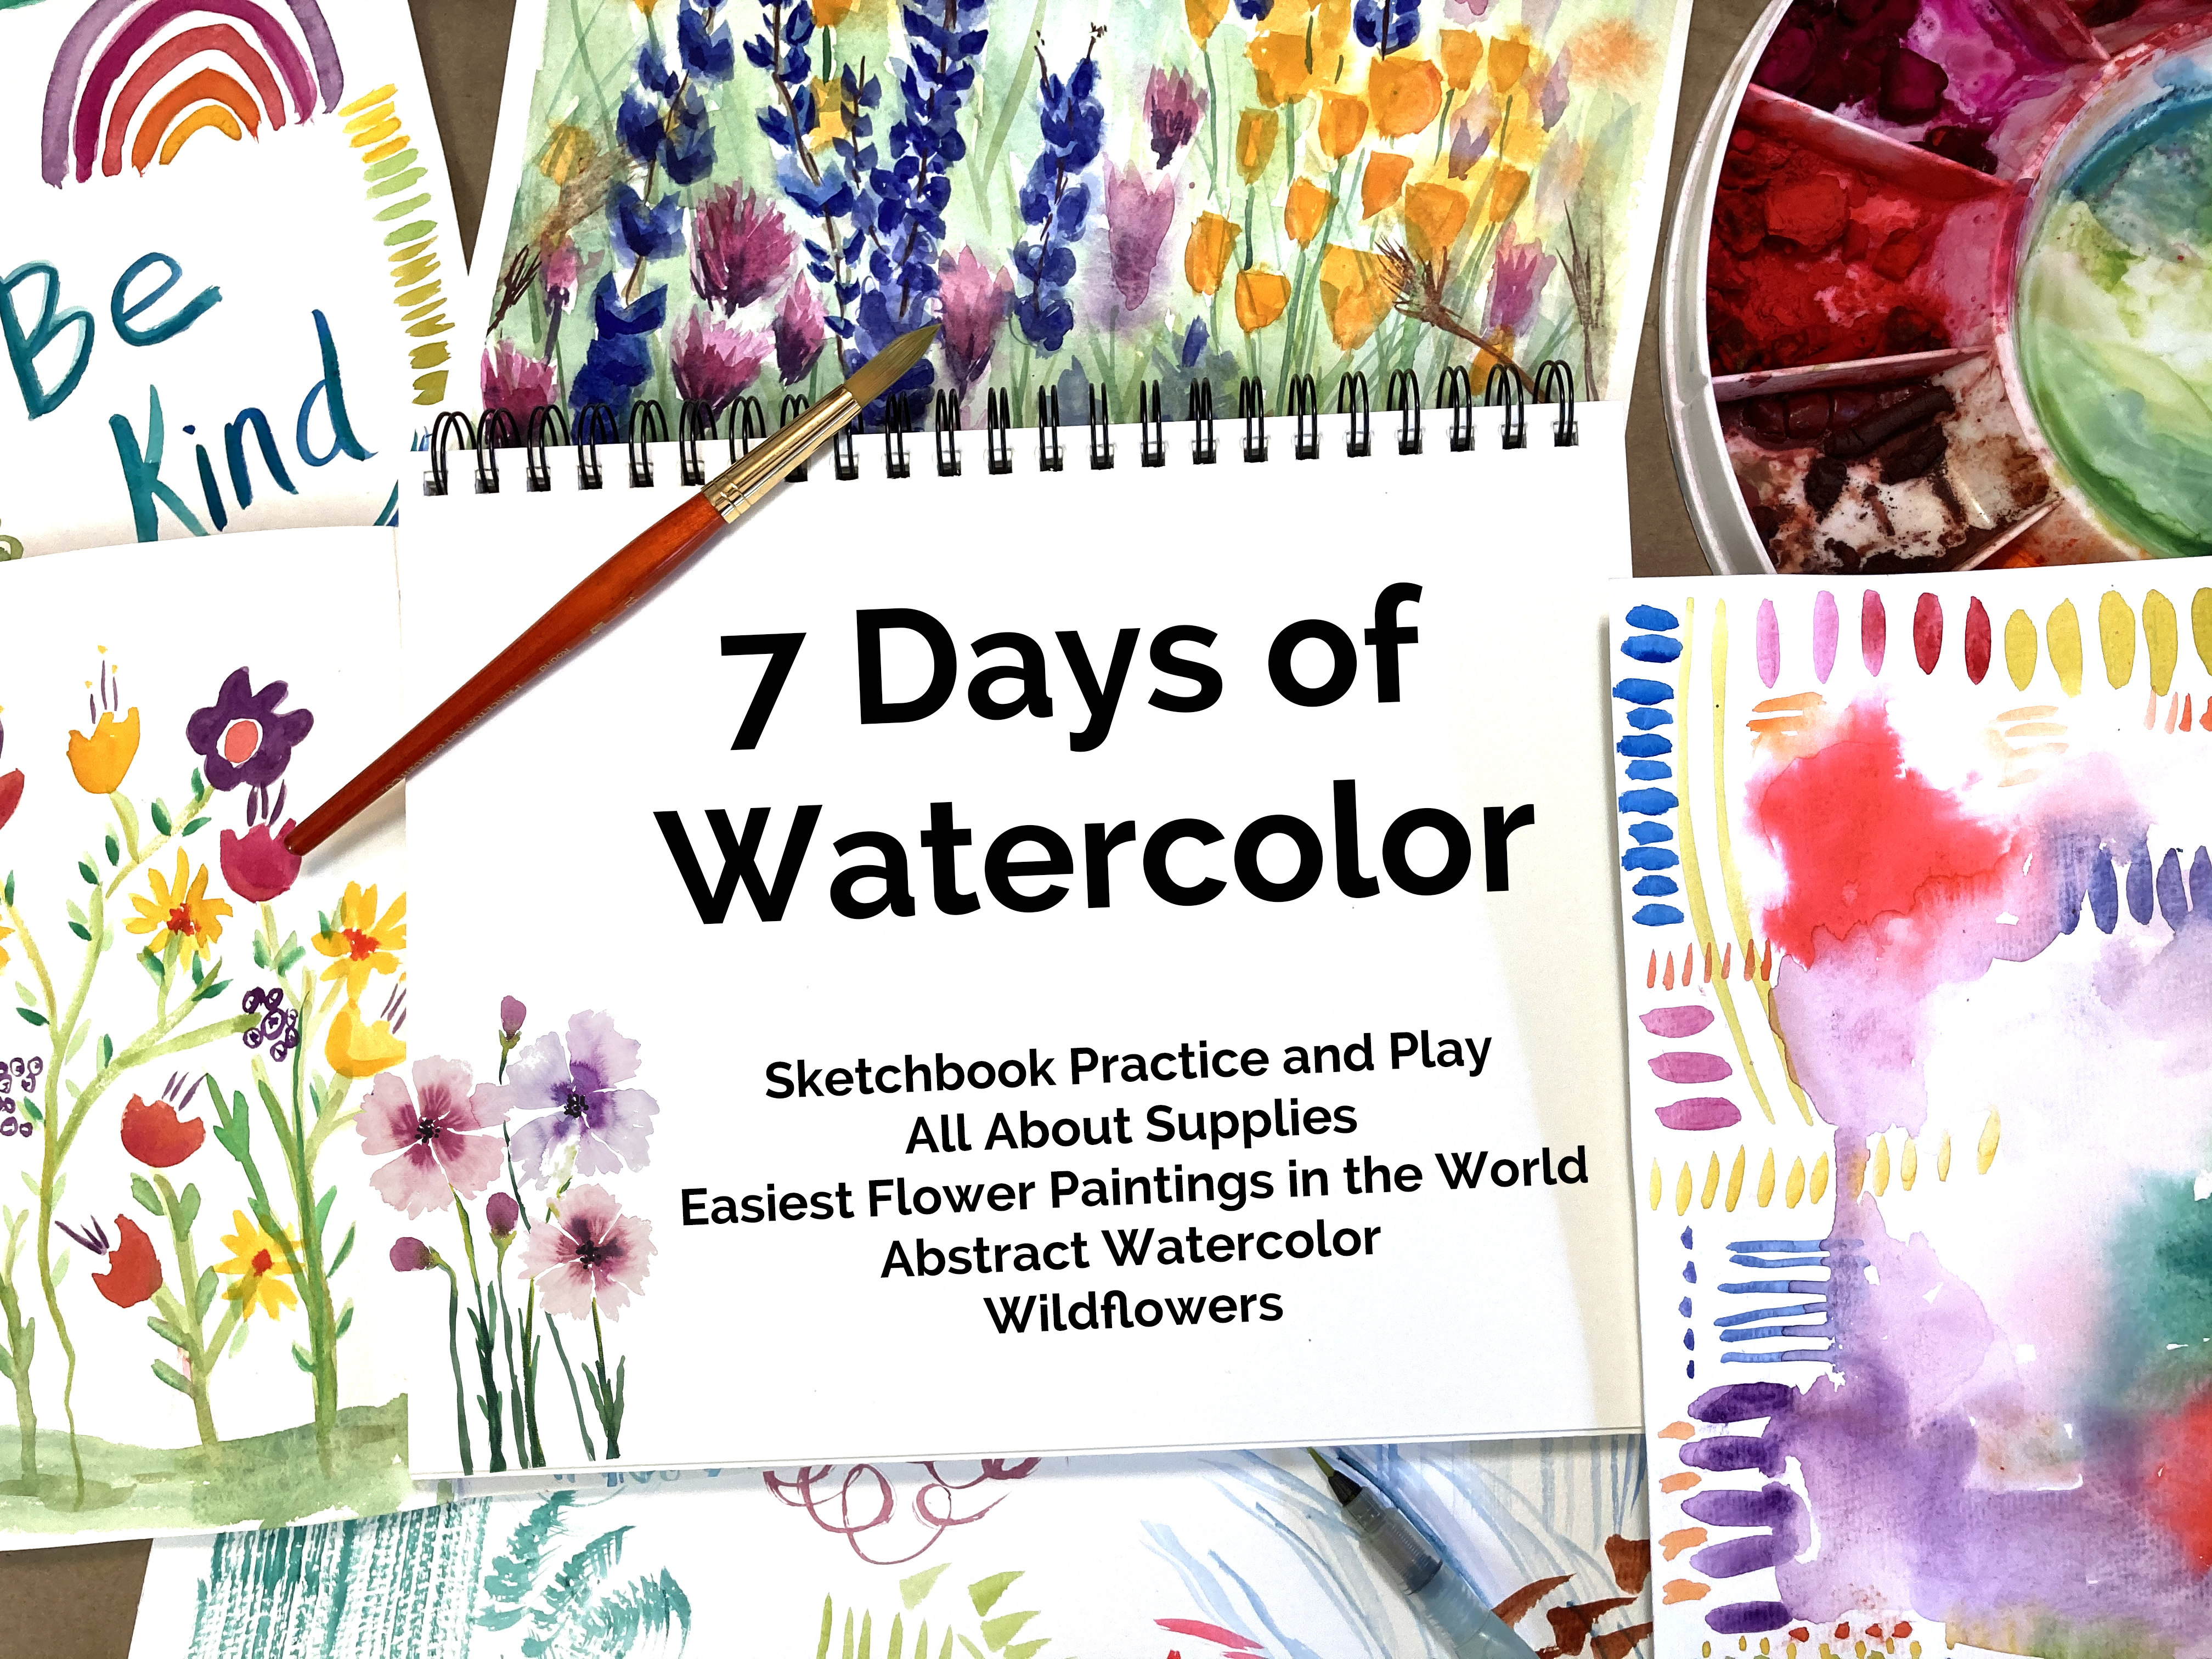 7 Days of Watercolor Painting